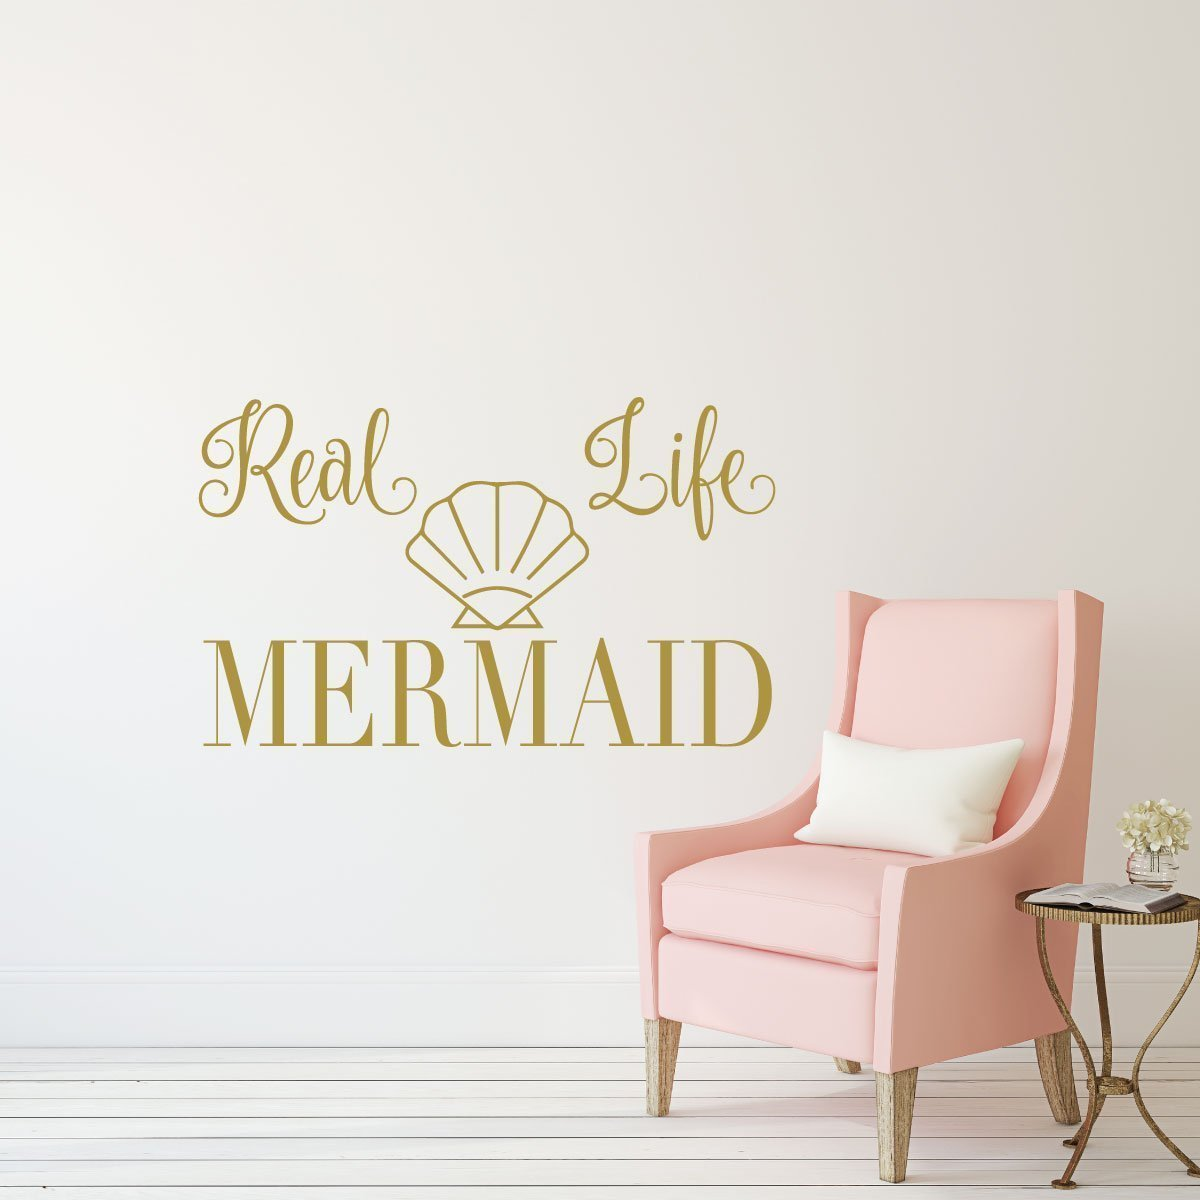 Mermaid Wall Decal With Se Ticker Ocean And Beach Themed Party Decoration Vinyl Wall Decal For Girls Bedroom Childrens Playroom Or Bathroom